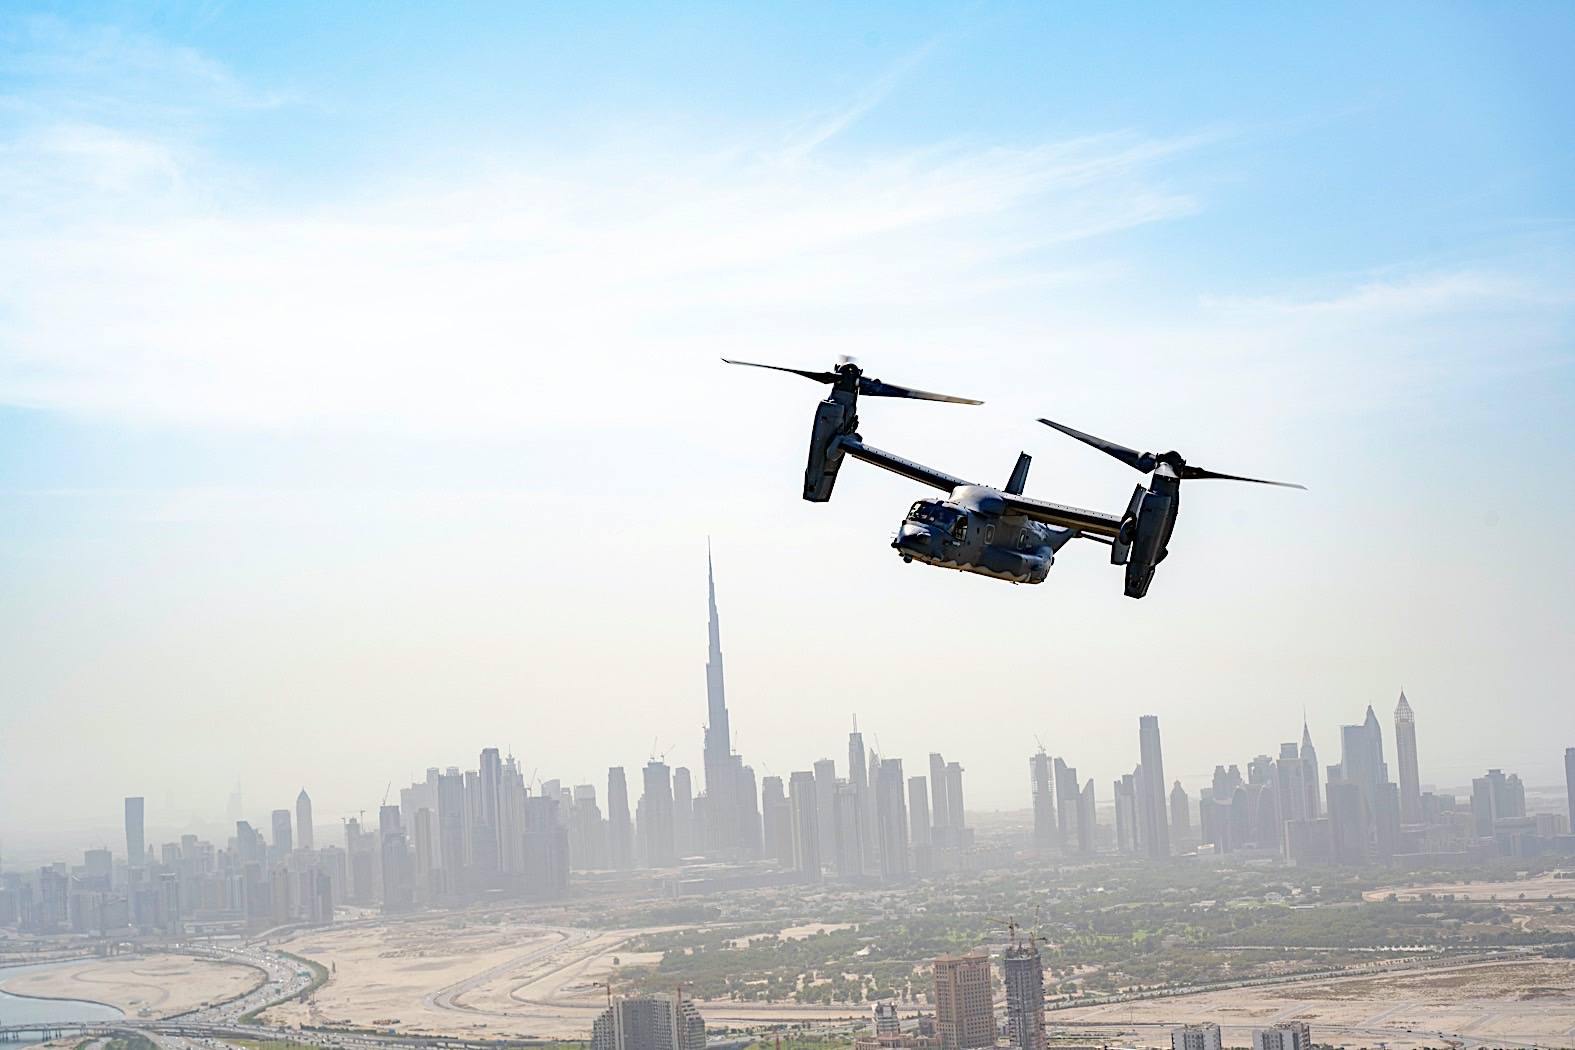 cv-22-osprey-flying-over-dubai-in-chase-mission-looks-like-a-scene-from-call-of-duty